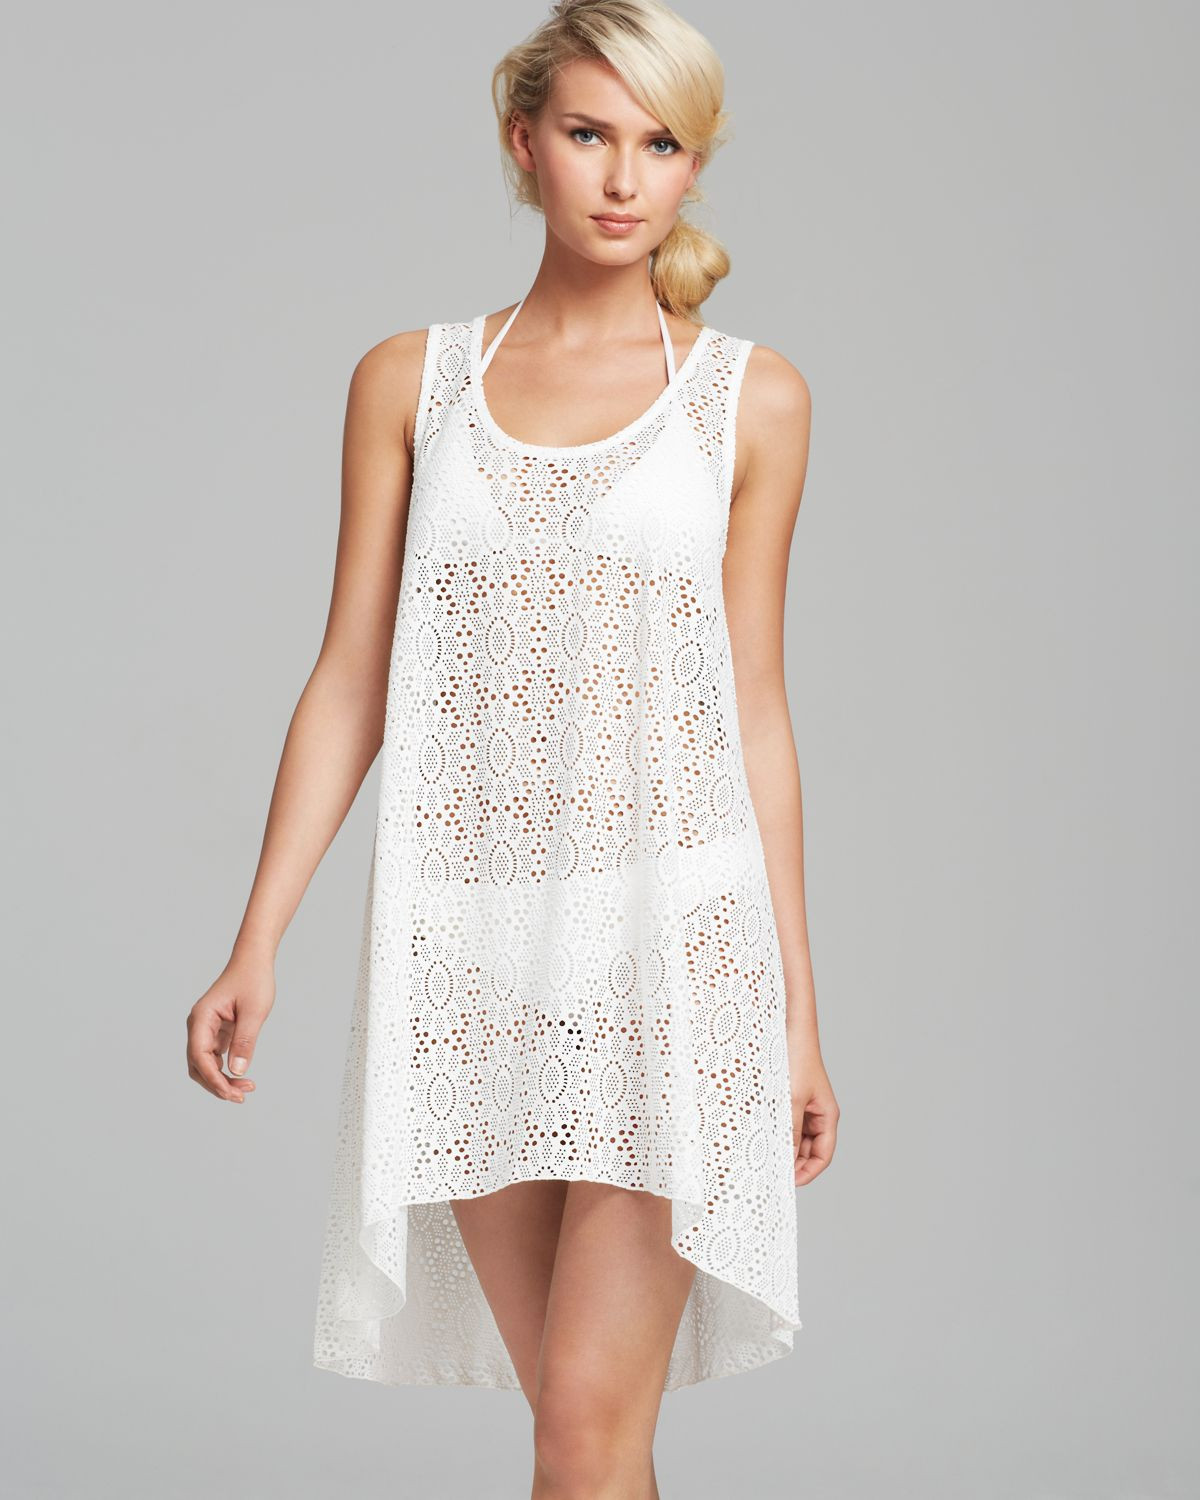 Crochet Cover Up New Gottex Tutti Frutti Crochet Cover Up Tank Dress In White Of Adorable 40 Pictures Crochet Cover Up